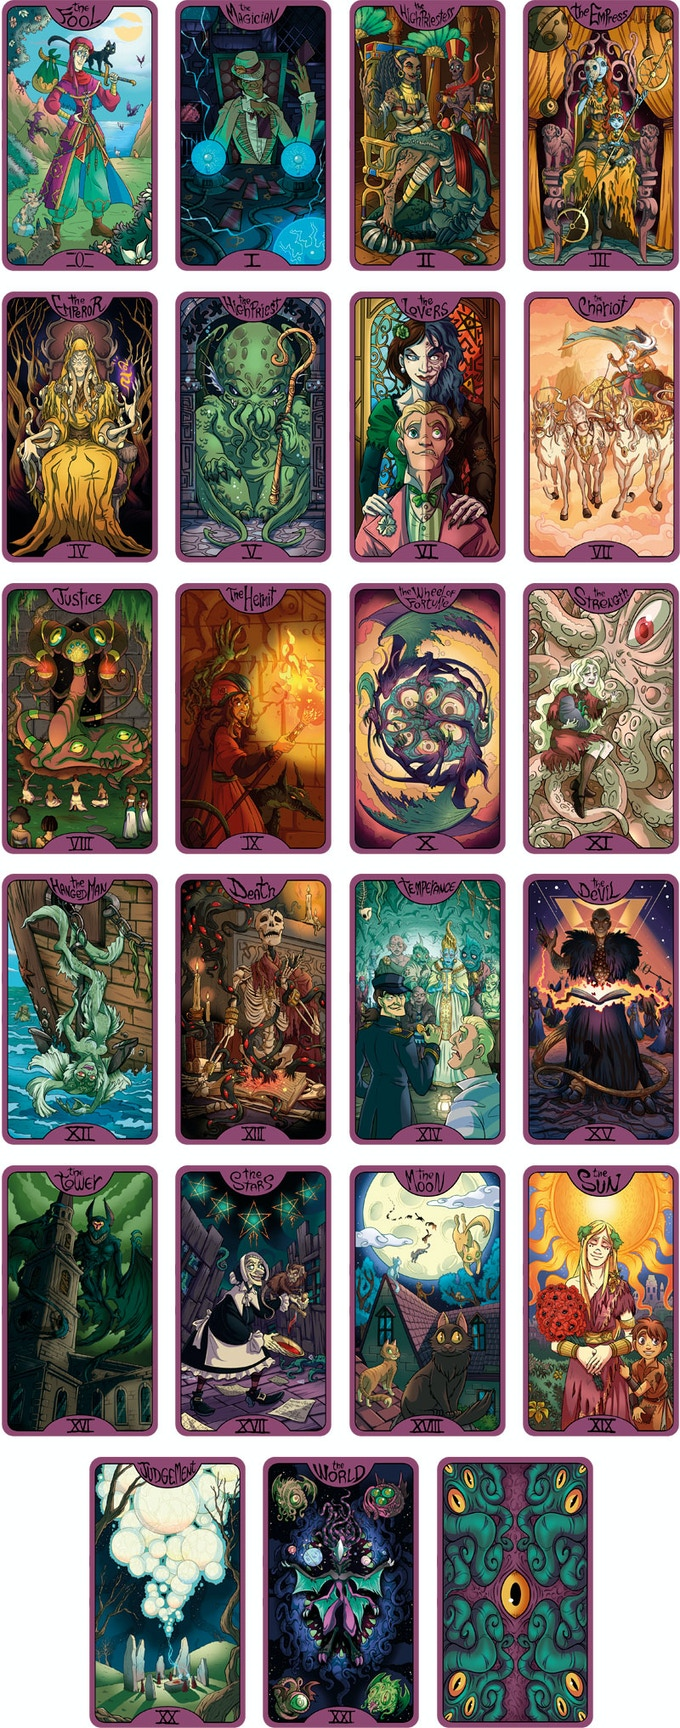 22 Major Arcana cards and the back side